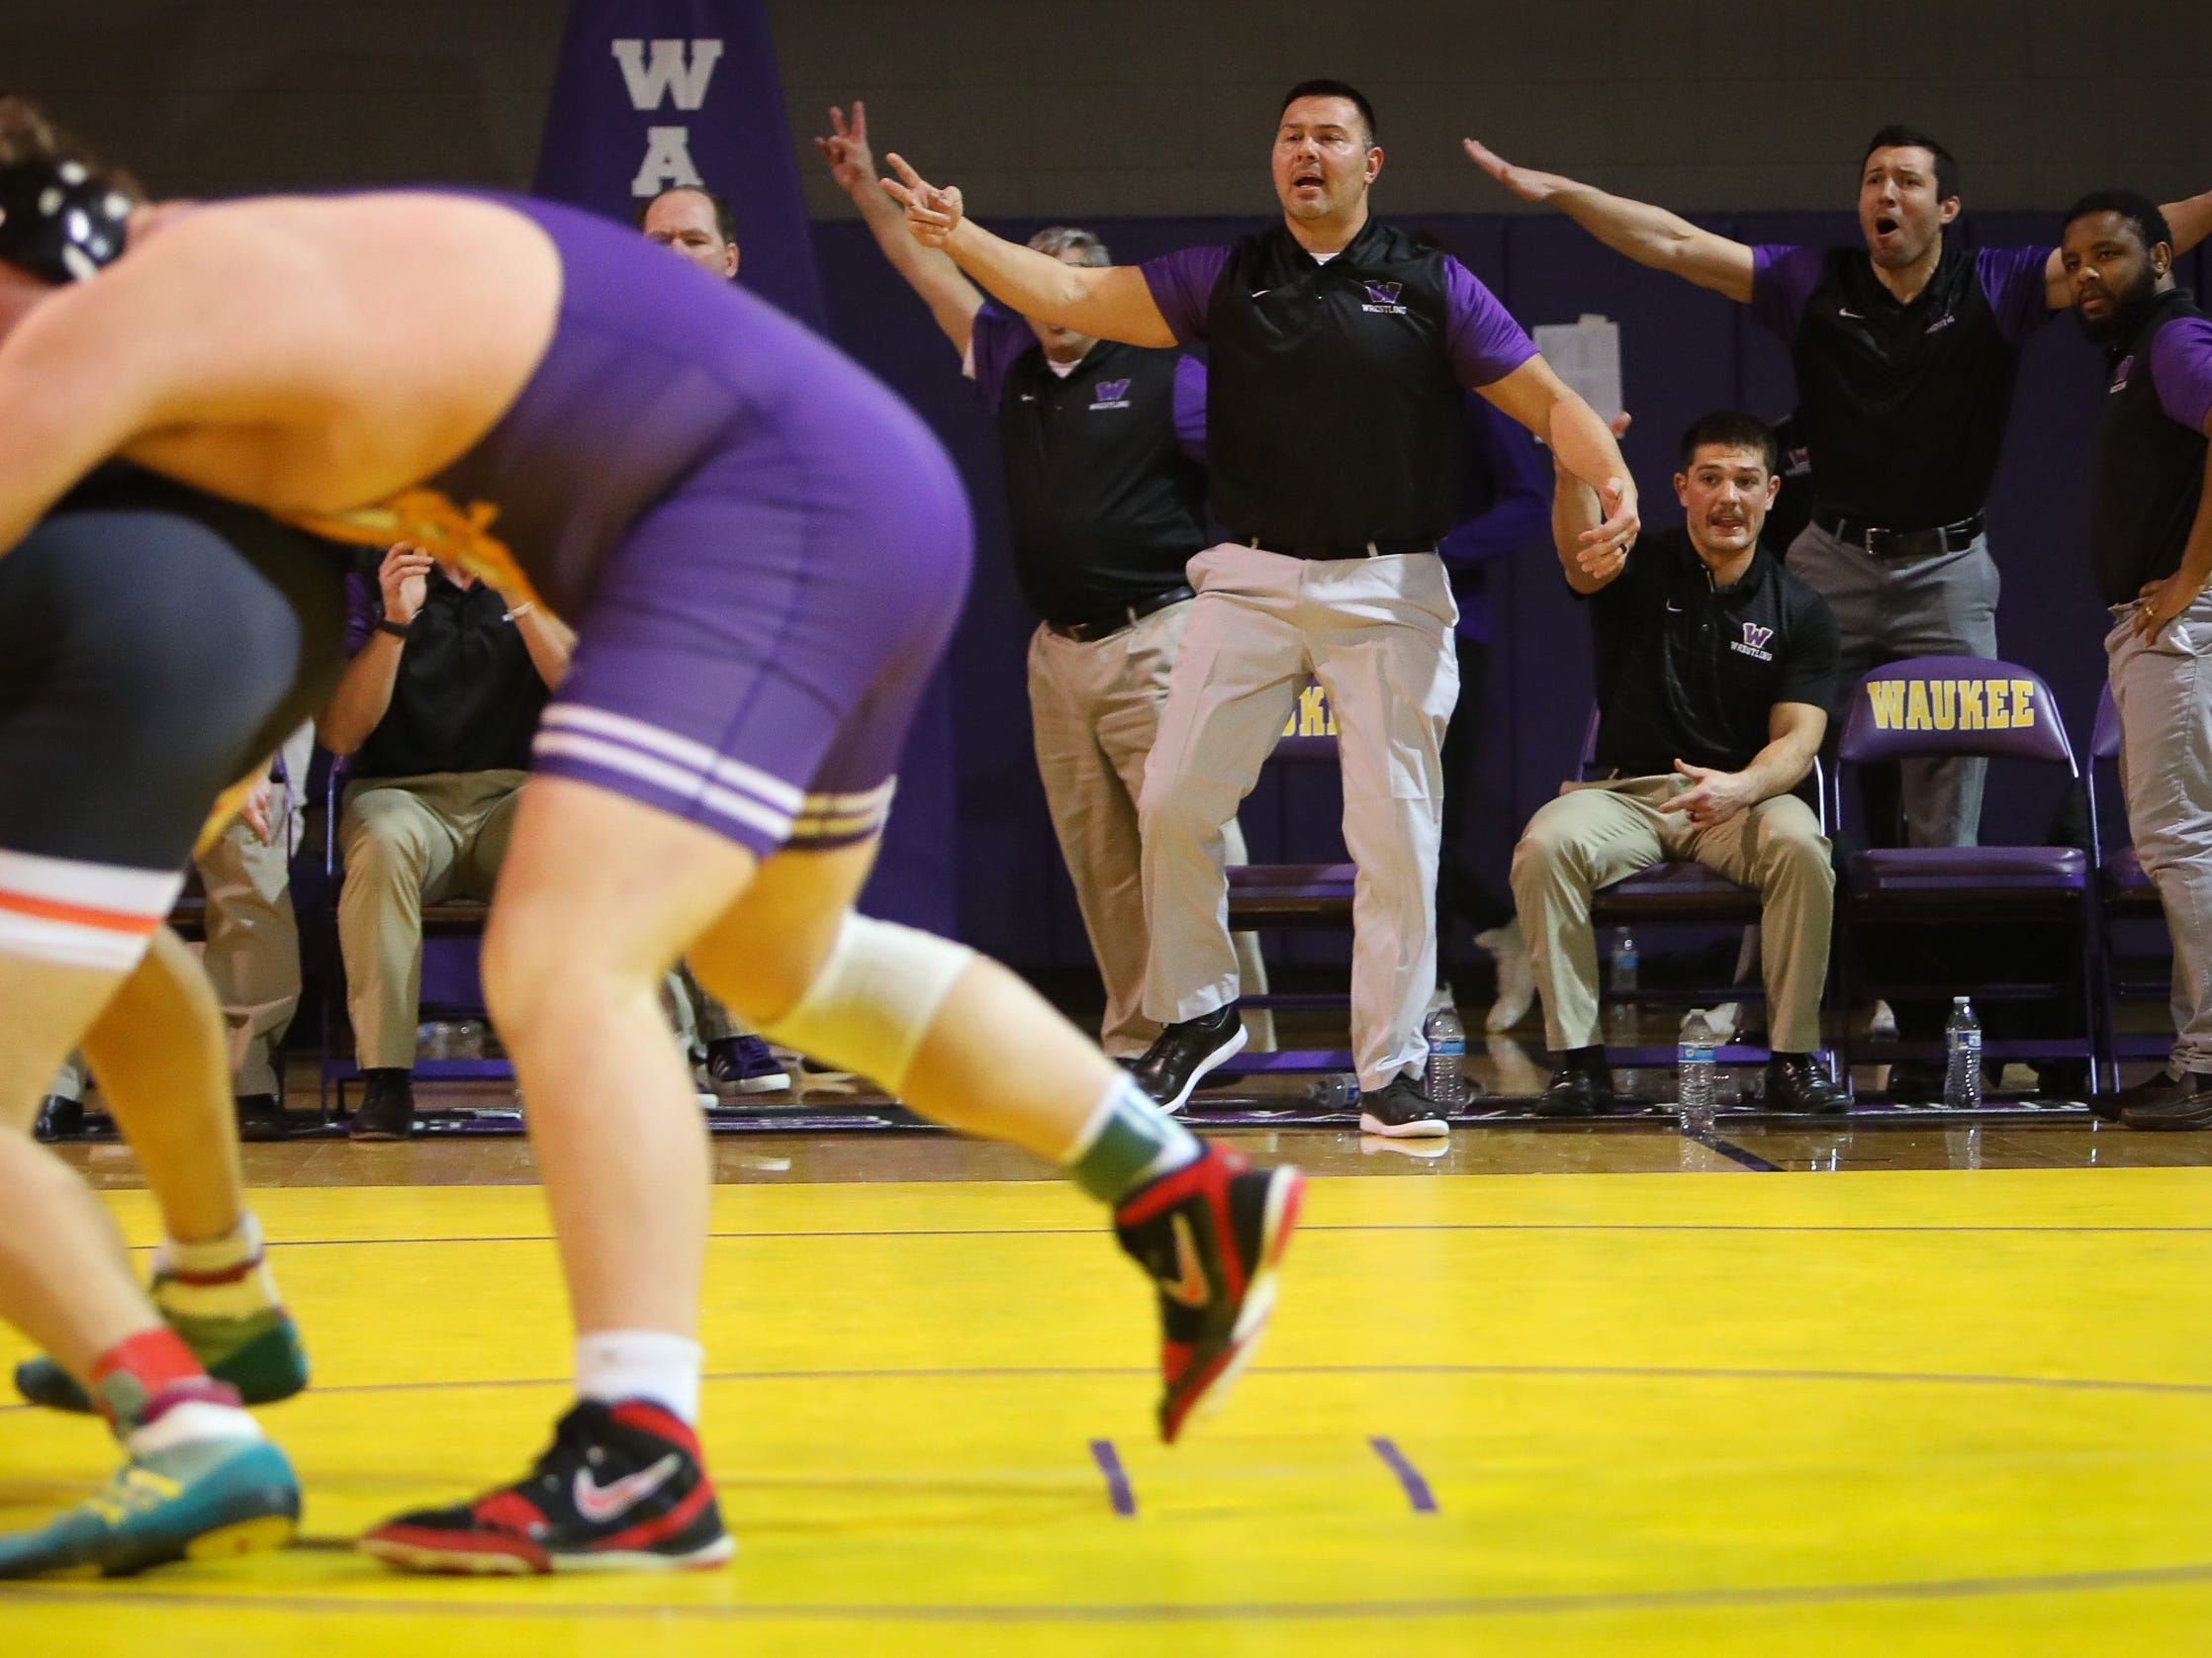 The Waukee coaching staff disagrees with a call during a high school wrestling meet between the Valley Tigers and the Waukee Warriors at Waukee High School on Dec. 20, 2018 in Waukee, Iowa.